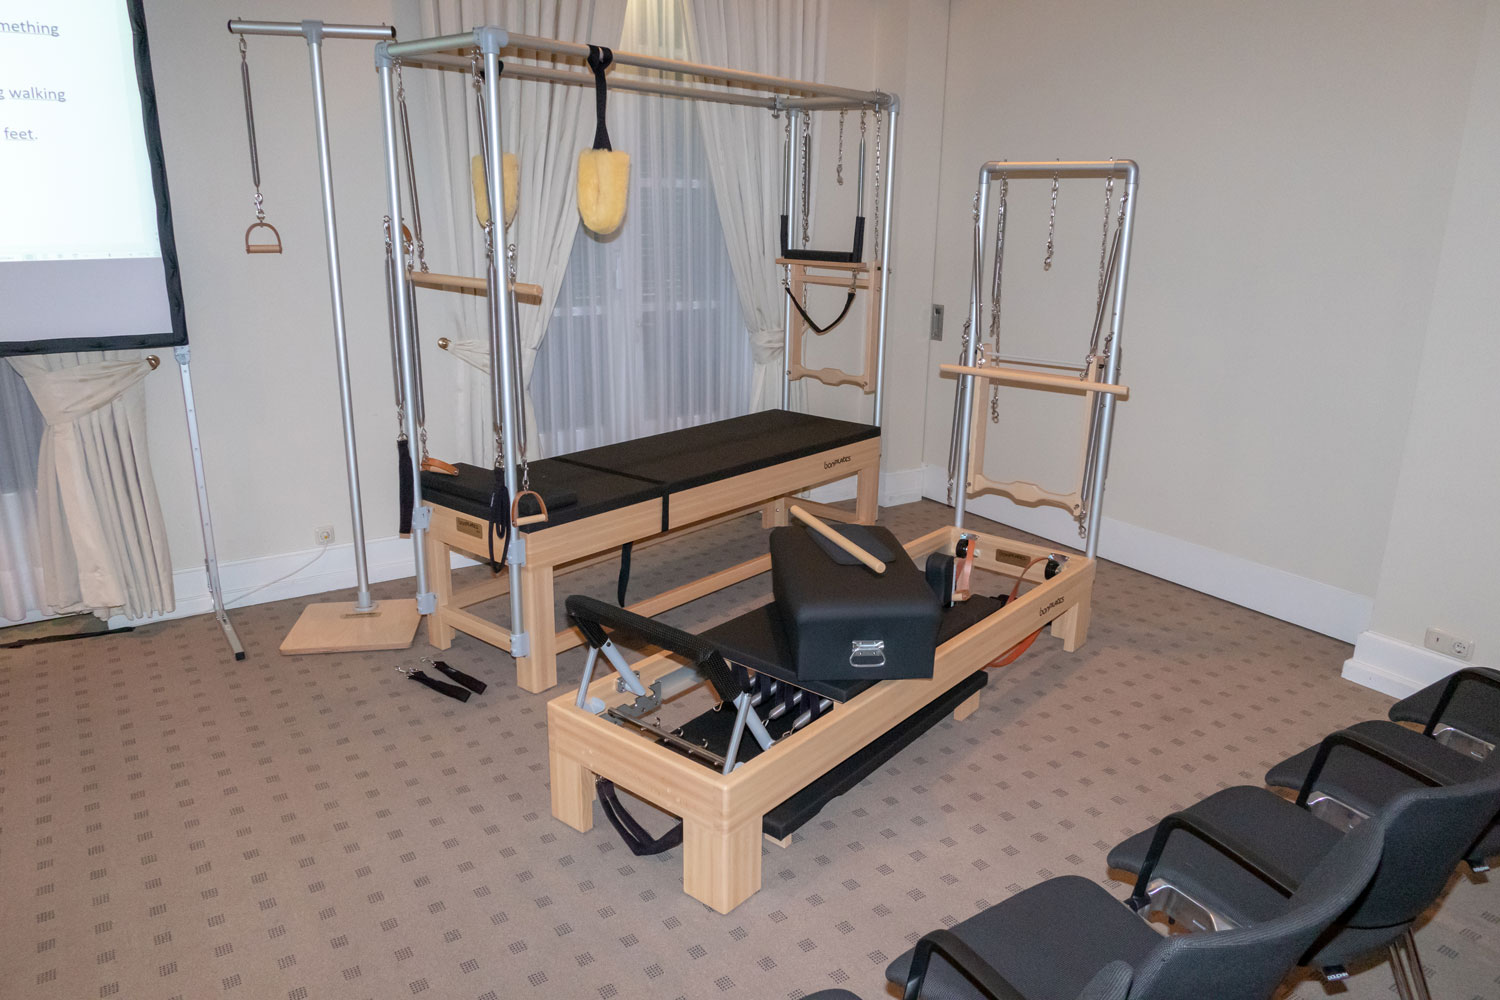 The studio suite with many Pilates devices.